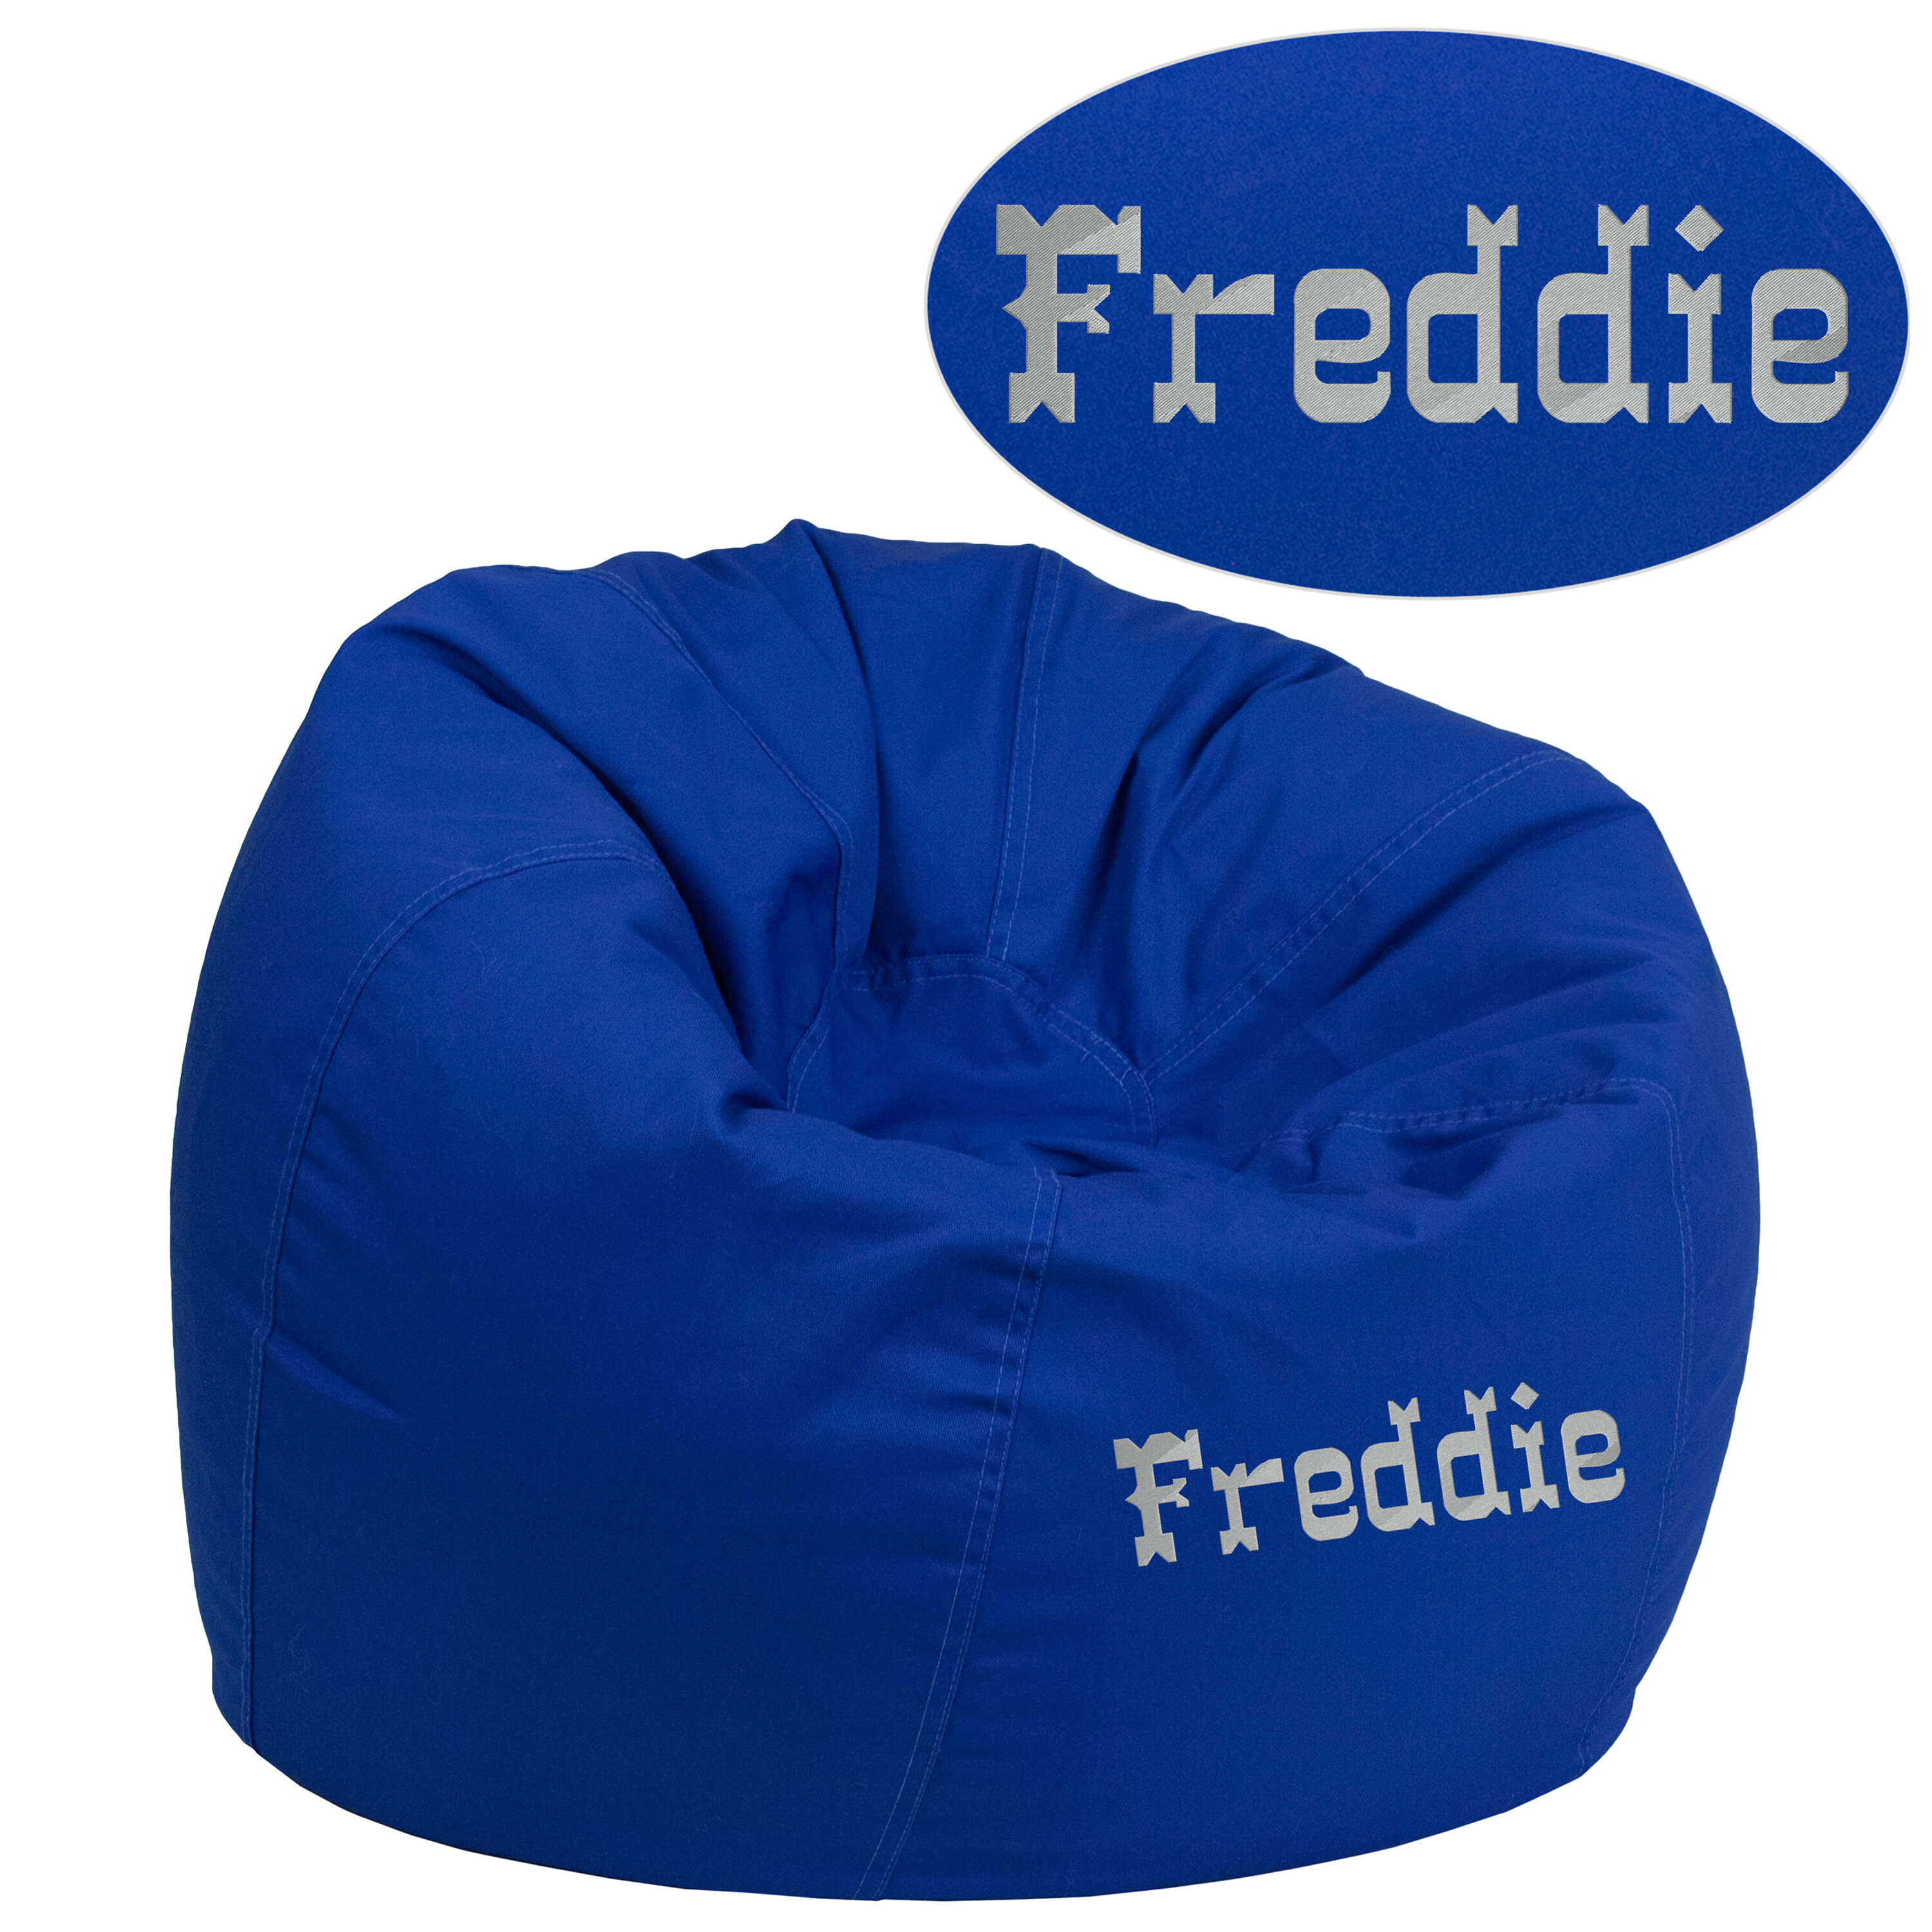 child bean bag chair personalized best for pc gaming reddit small solid royal blue kids